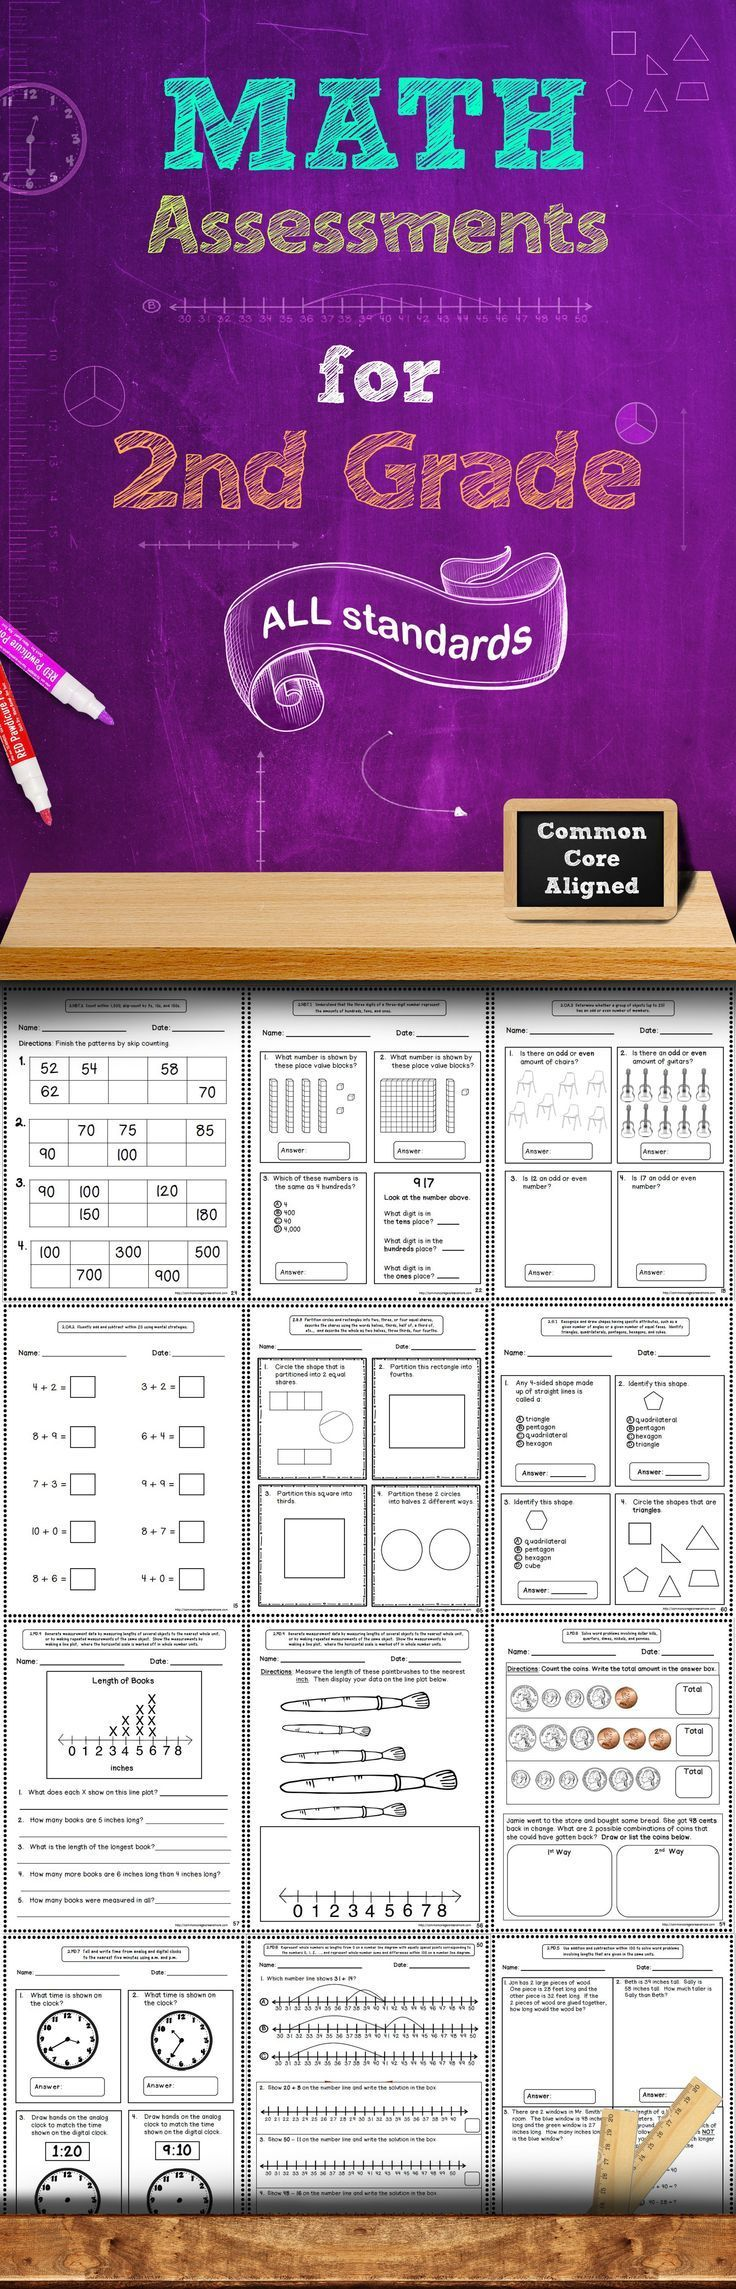 This 60+ page assessment bundle contains quick math assessments for every 2nd Grade Common Core Math Standard. There are at least 2 assessments included for each standard. These assessments packs are also available for grades 1, 3, 4, and 5!